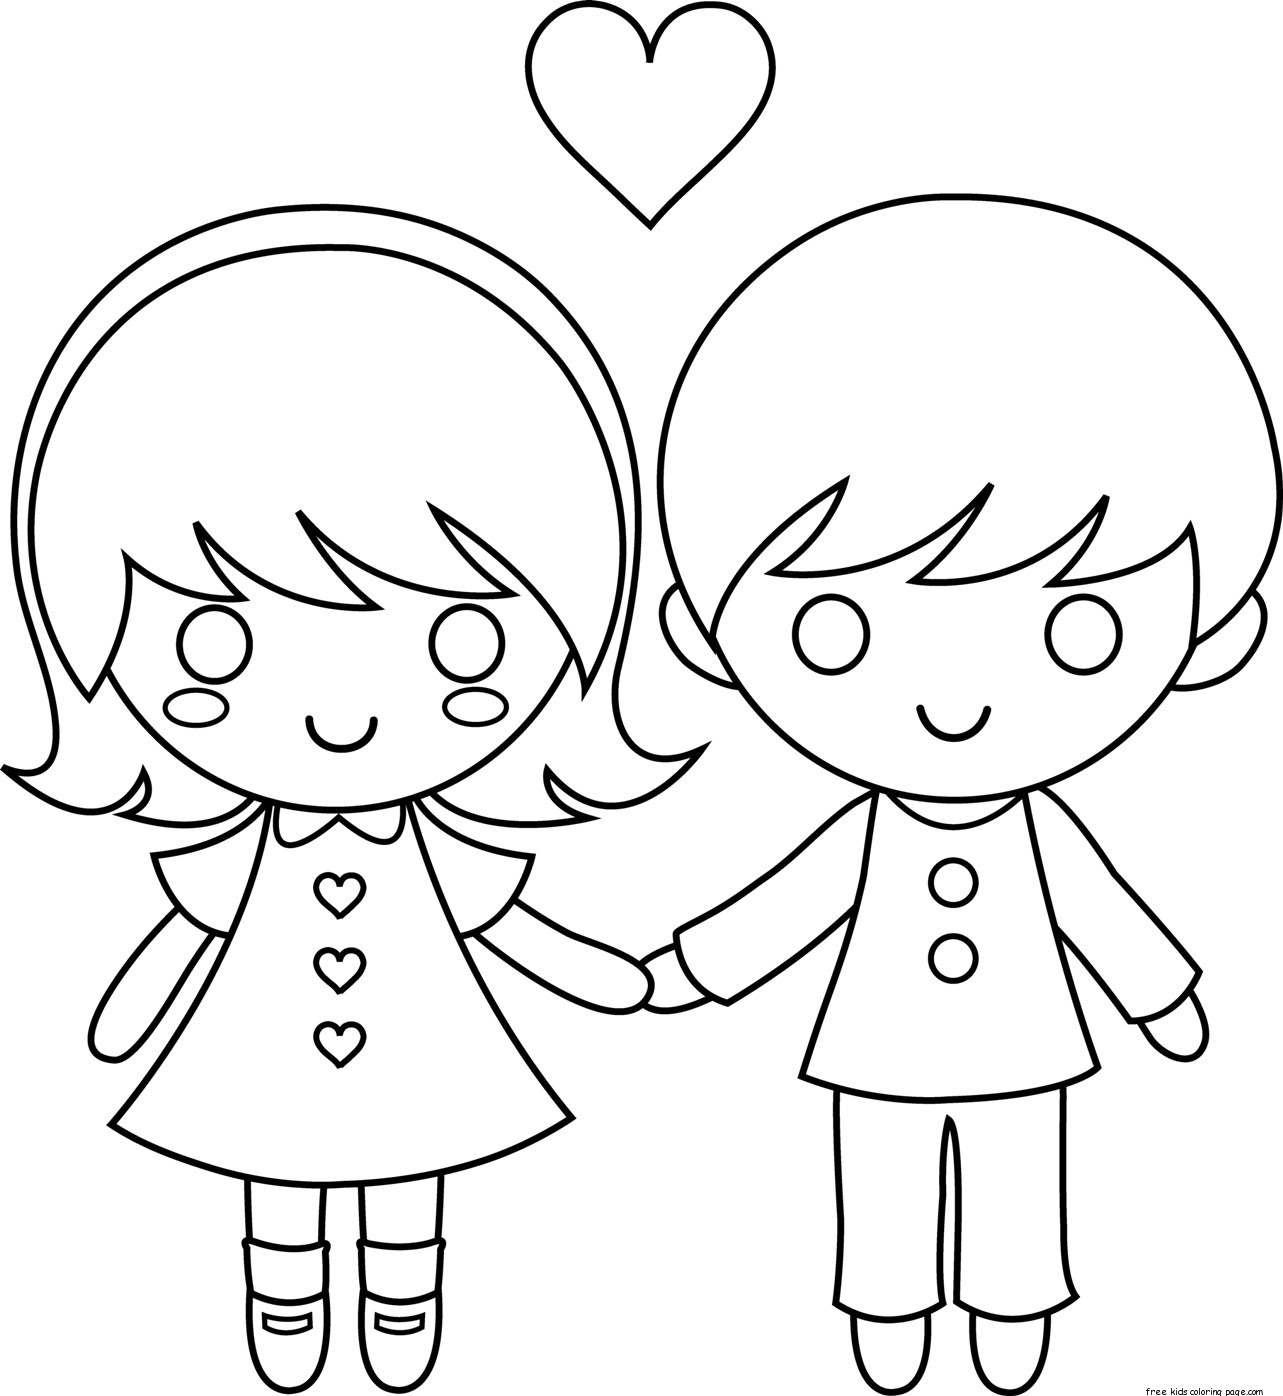 coloring picture love printable couple valentine day coloring pages for kidsfree coloring picture love